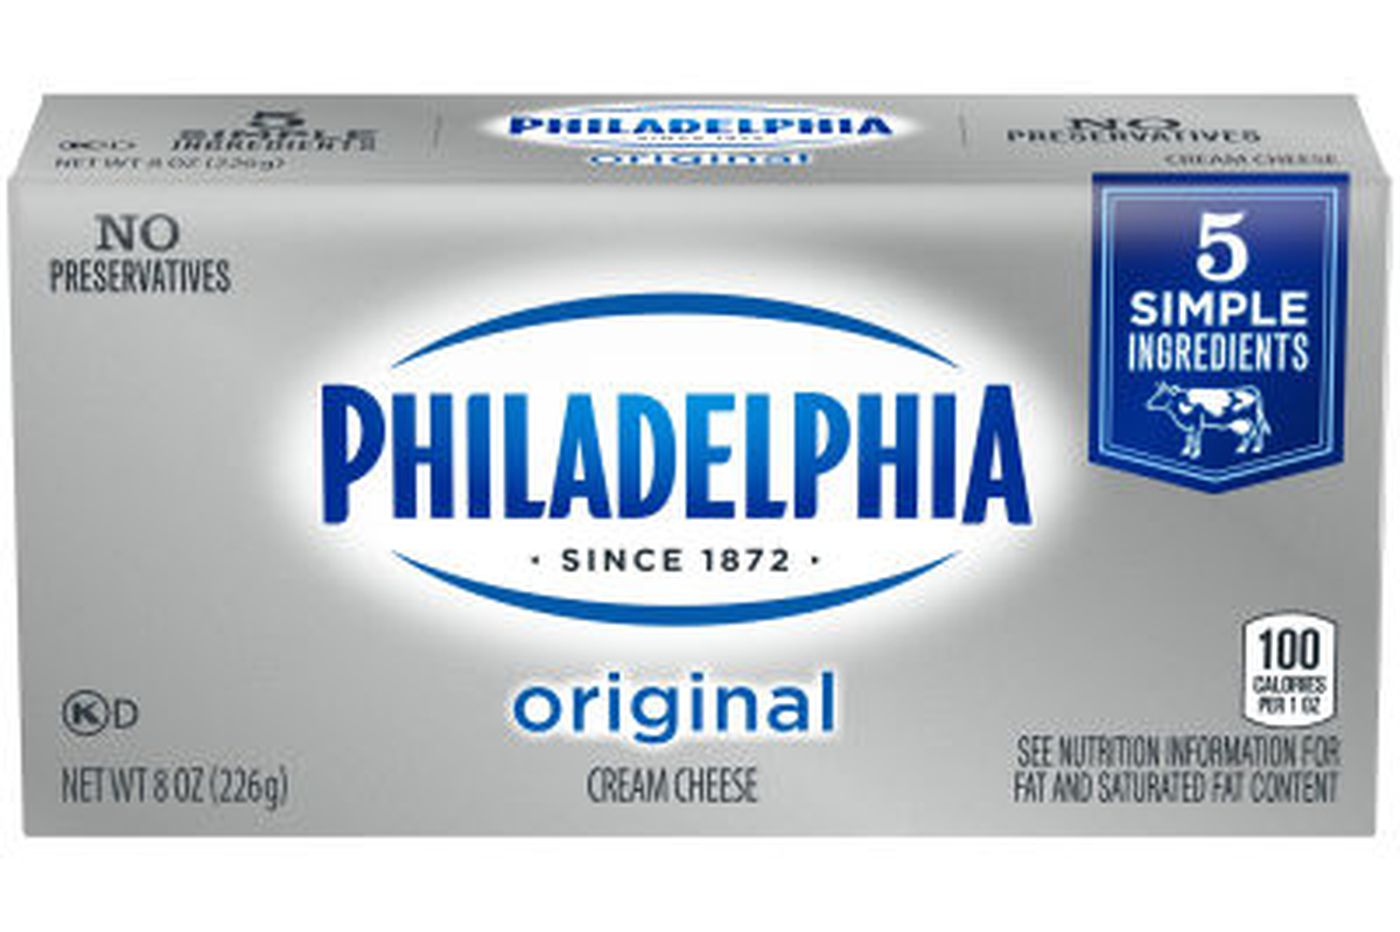 Philadelphia Cream Cheese was never from Philly. So why do we call it that?